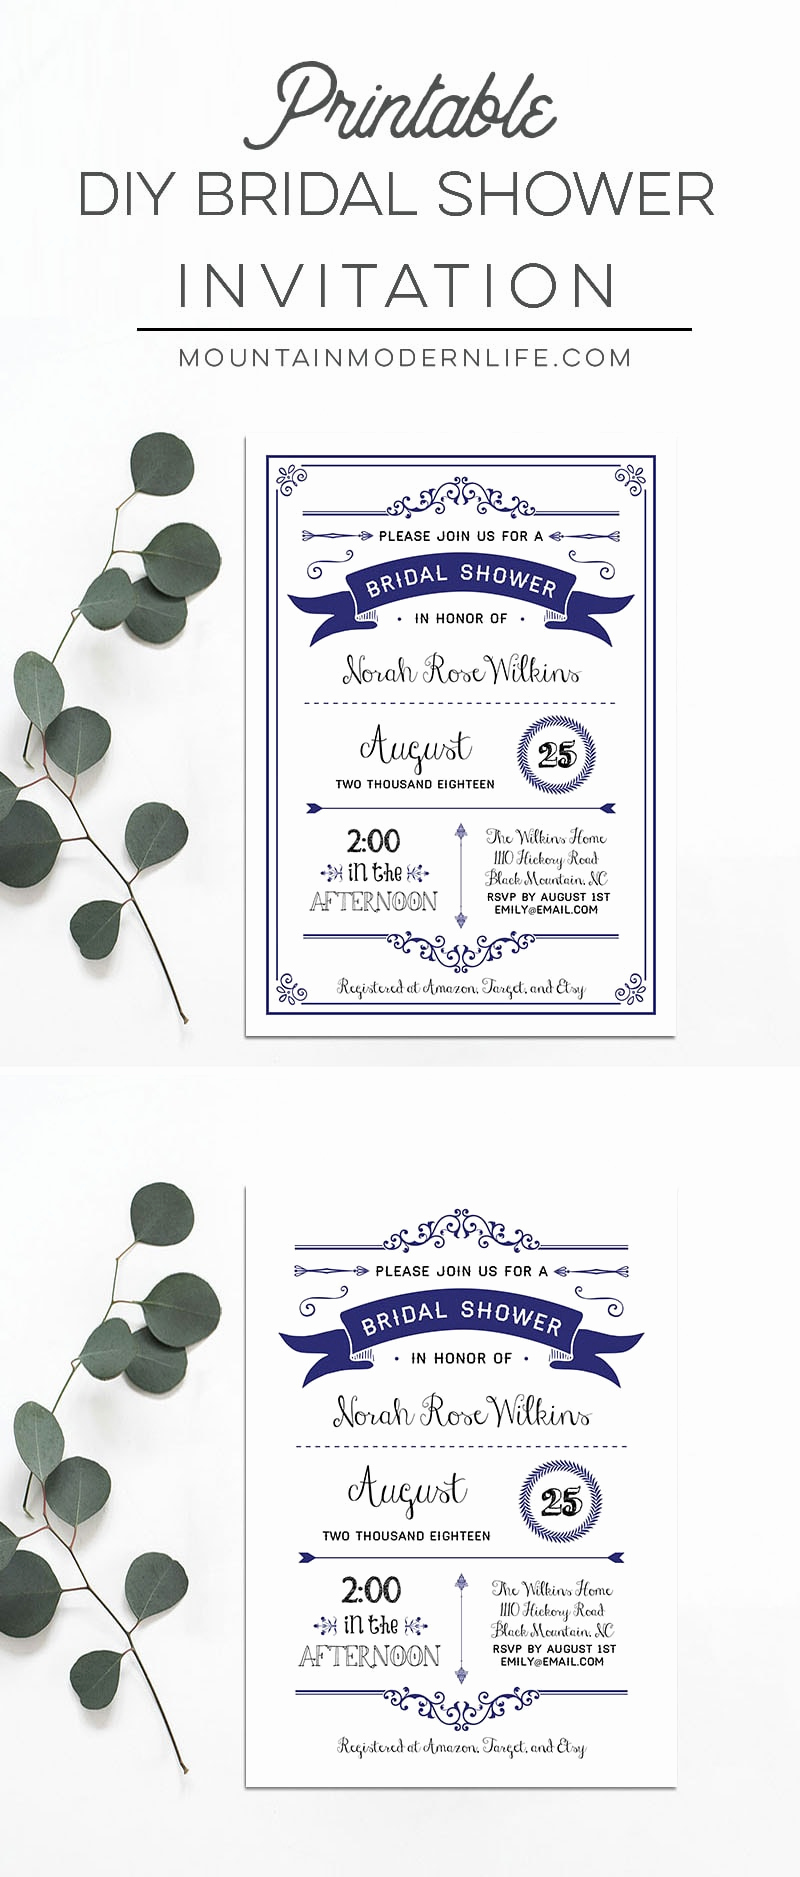 Diy Bridal Shower Invitation Templates Awesome Printable Diy Bridal Shower Invitation